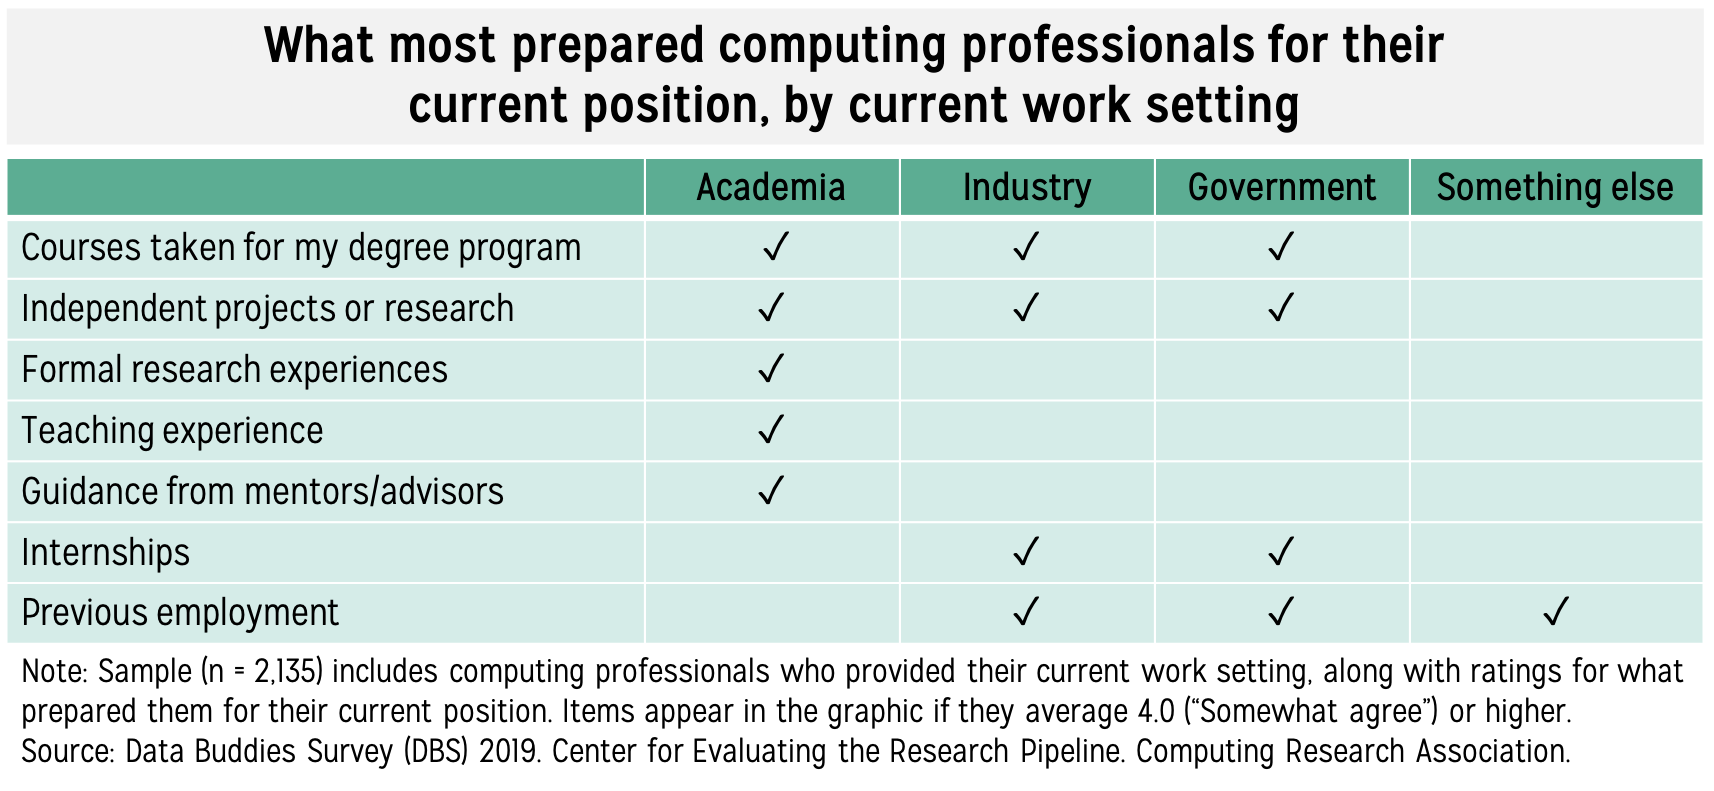 A table of what current computing professionals thought prepared them most for their current position, based on the setting they work in. The contents of the table are discussed in the main text of this post.